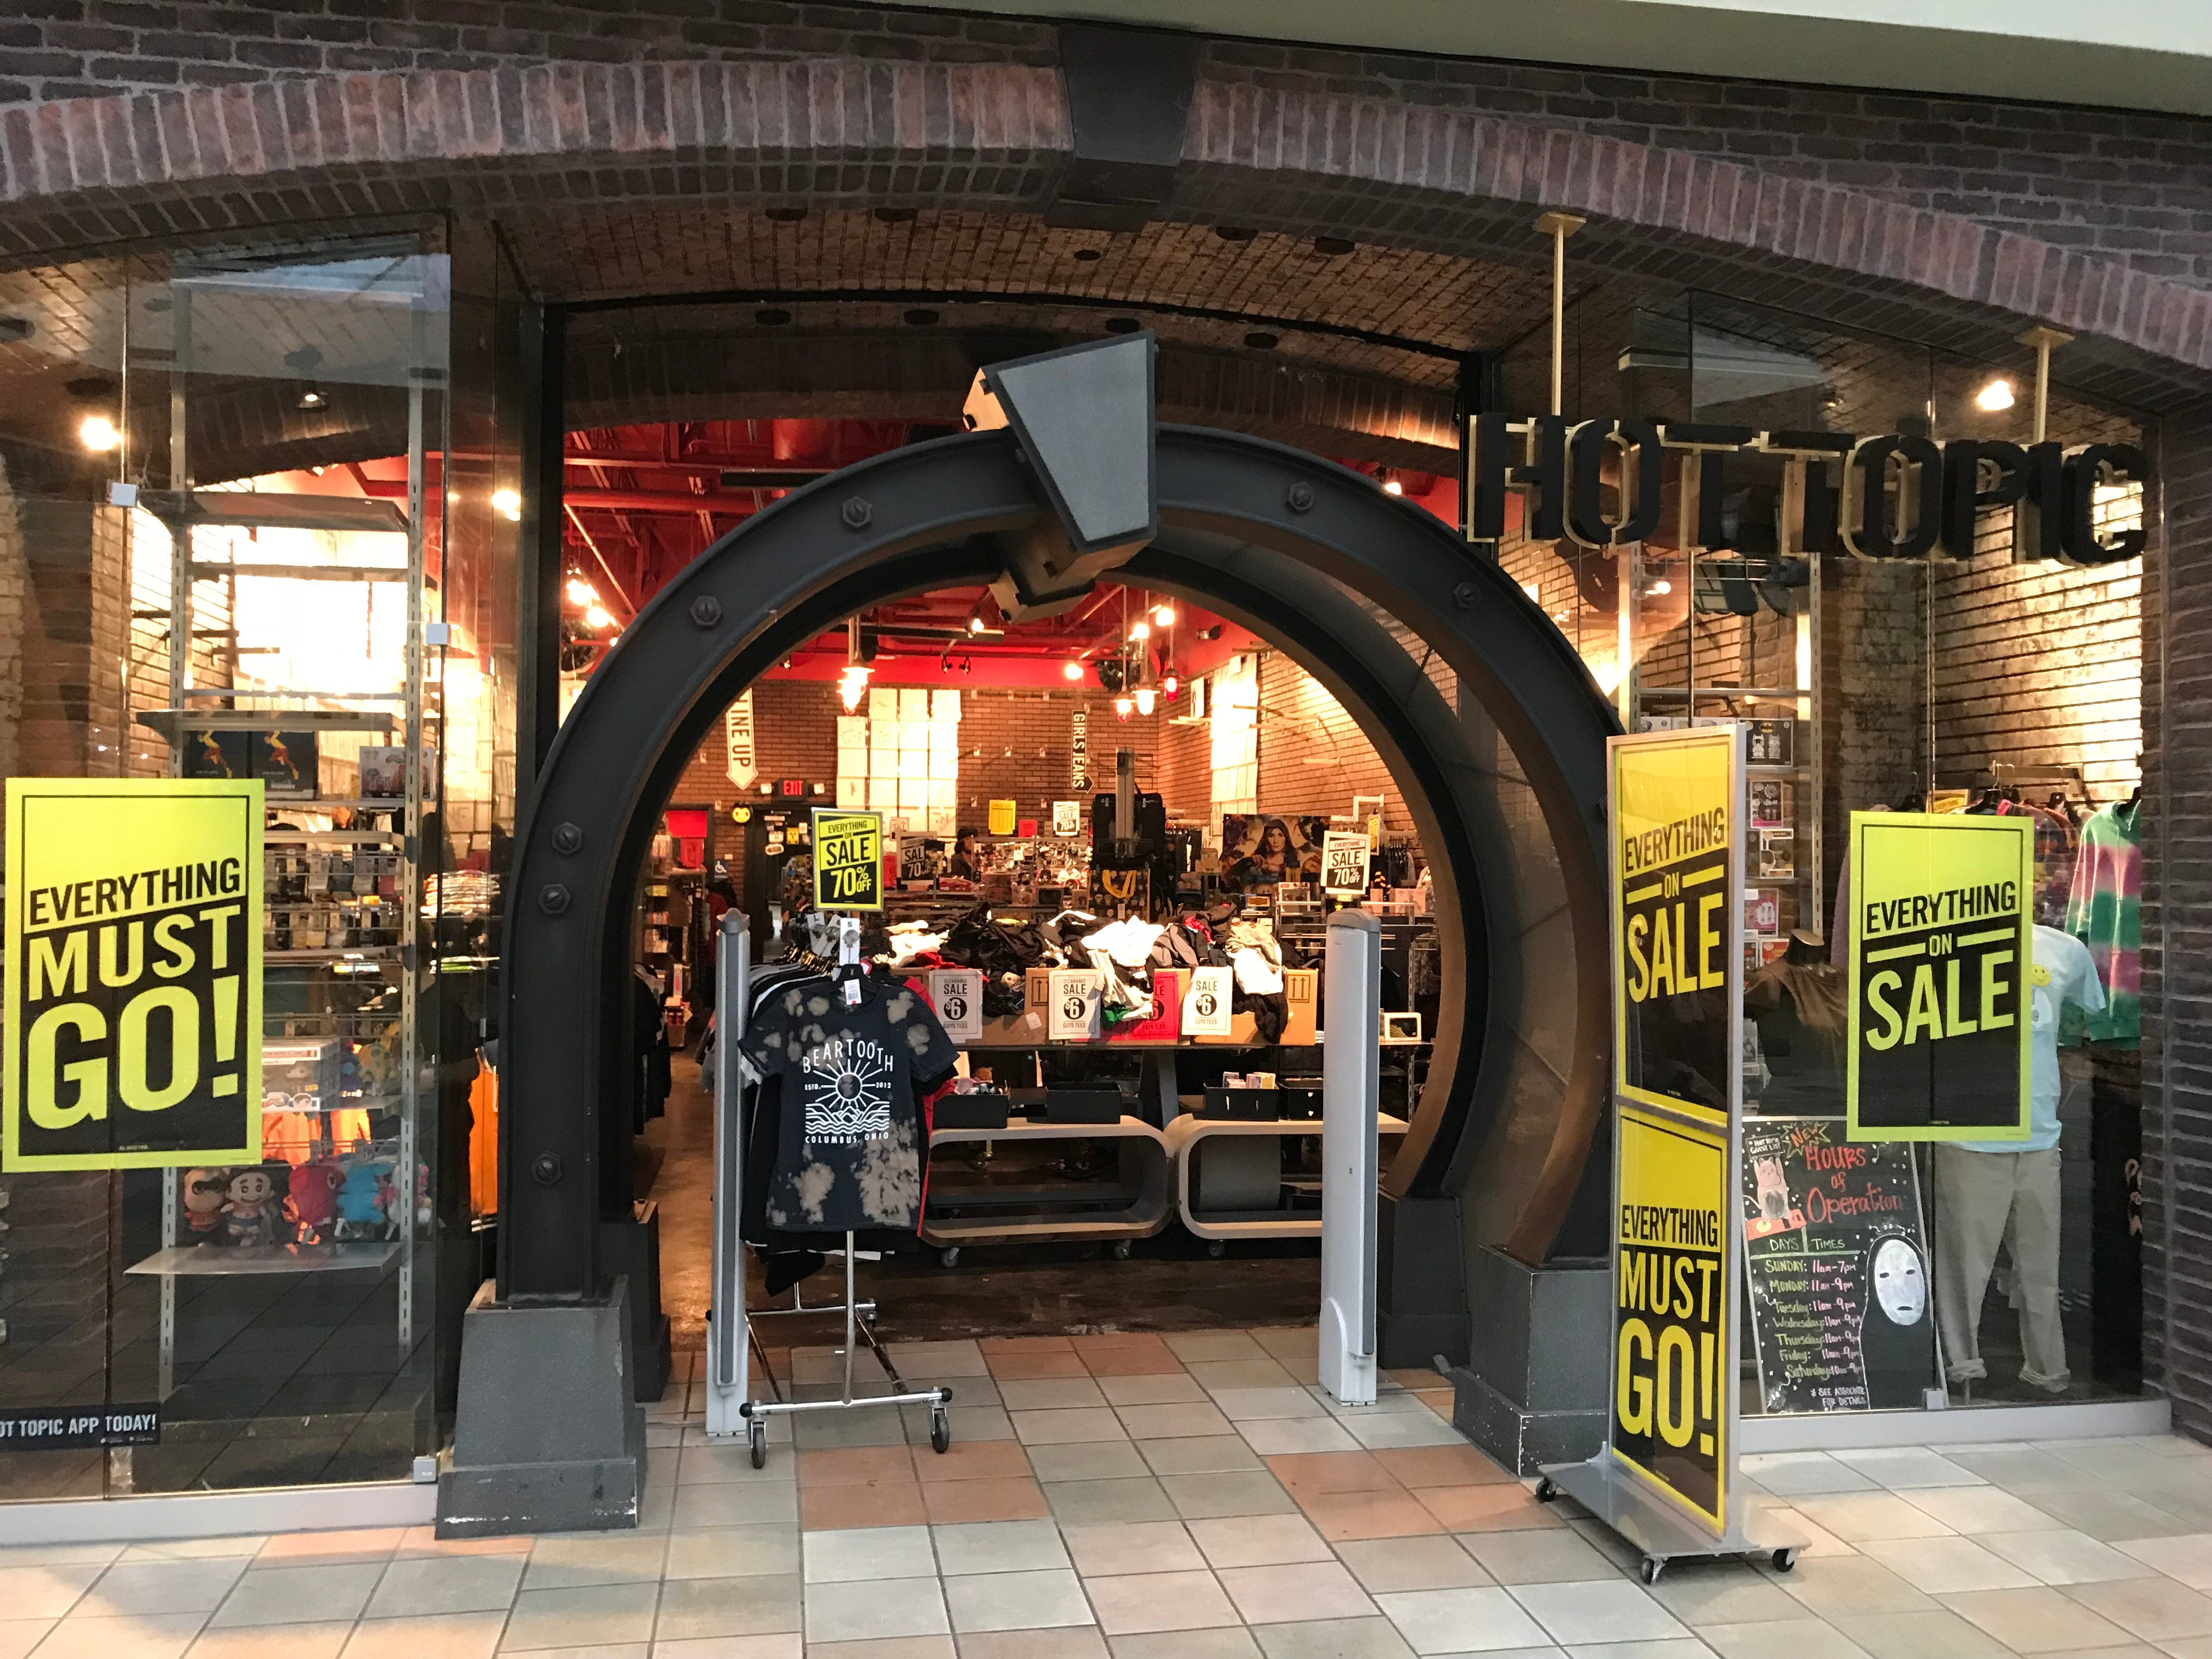 The Hot Topic at Knoxville Center Mall is closing.